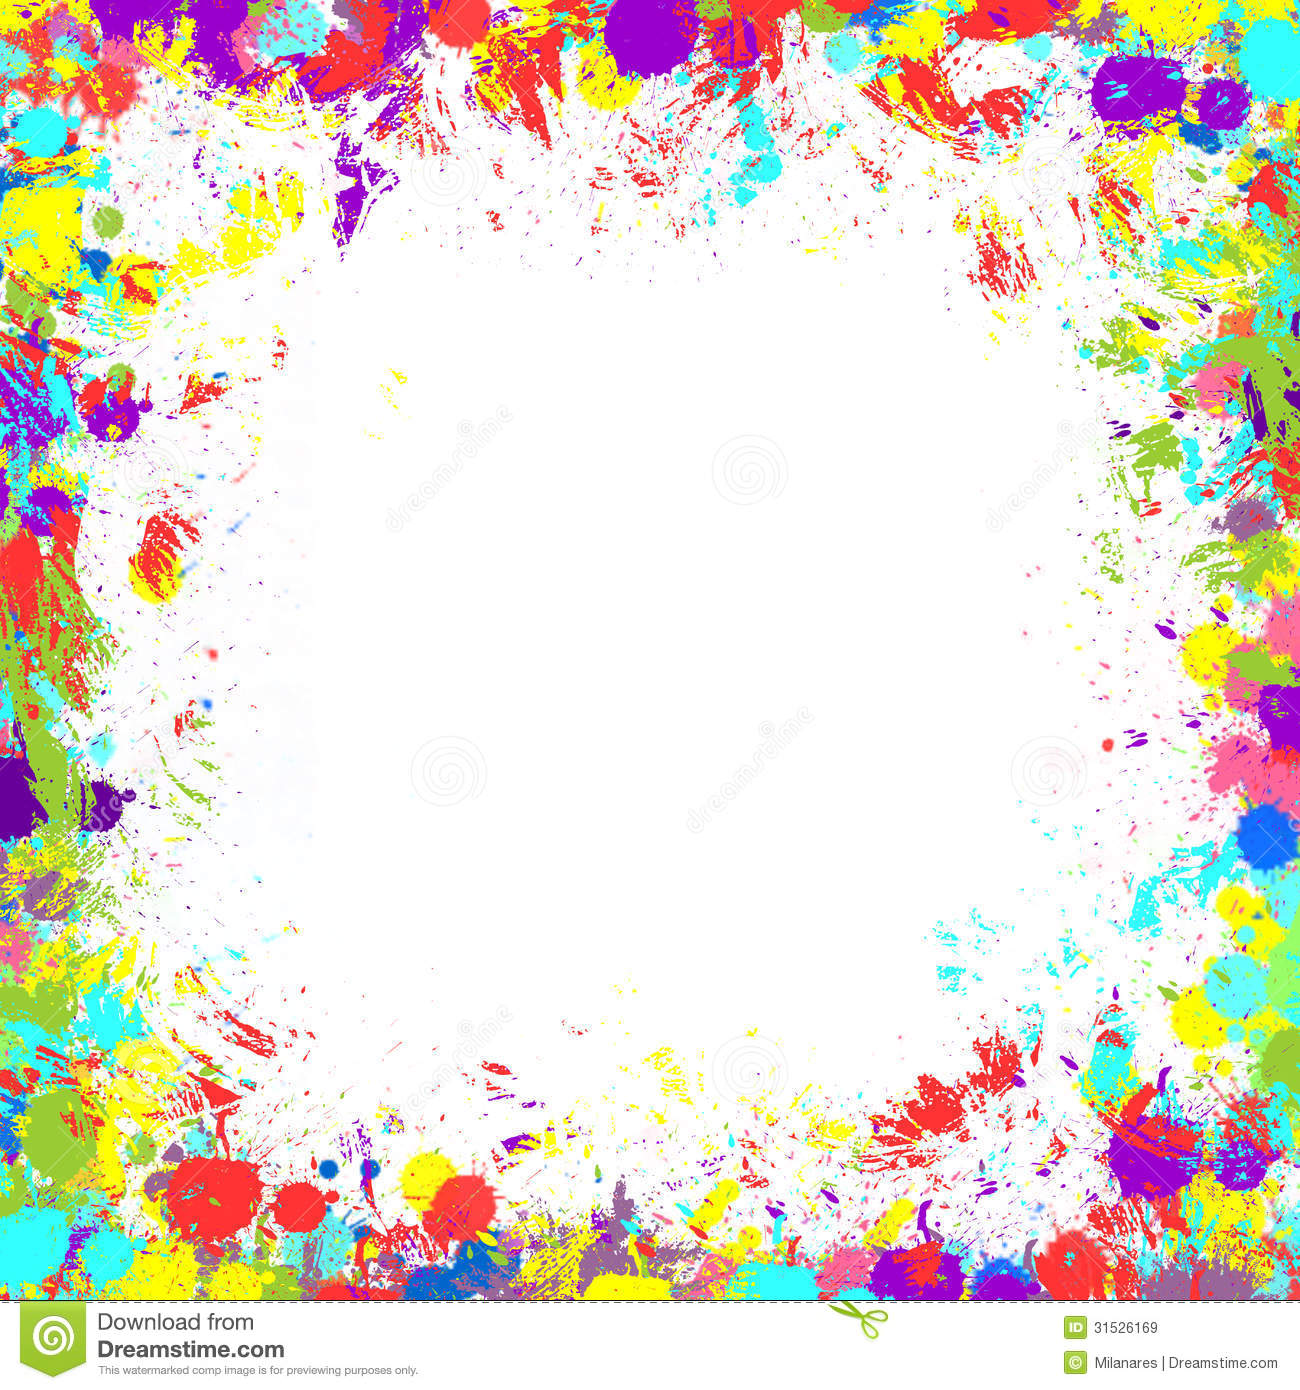 Colorful Border Clipart - Clipart Kid